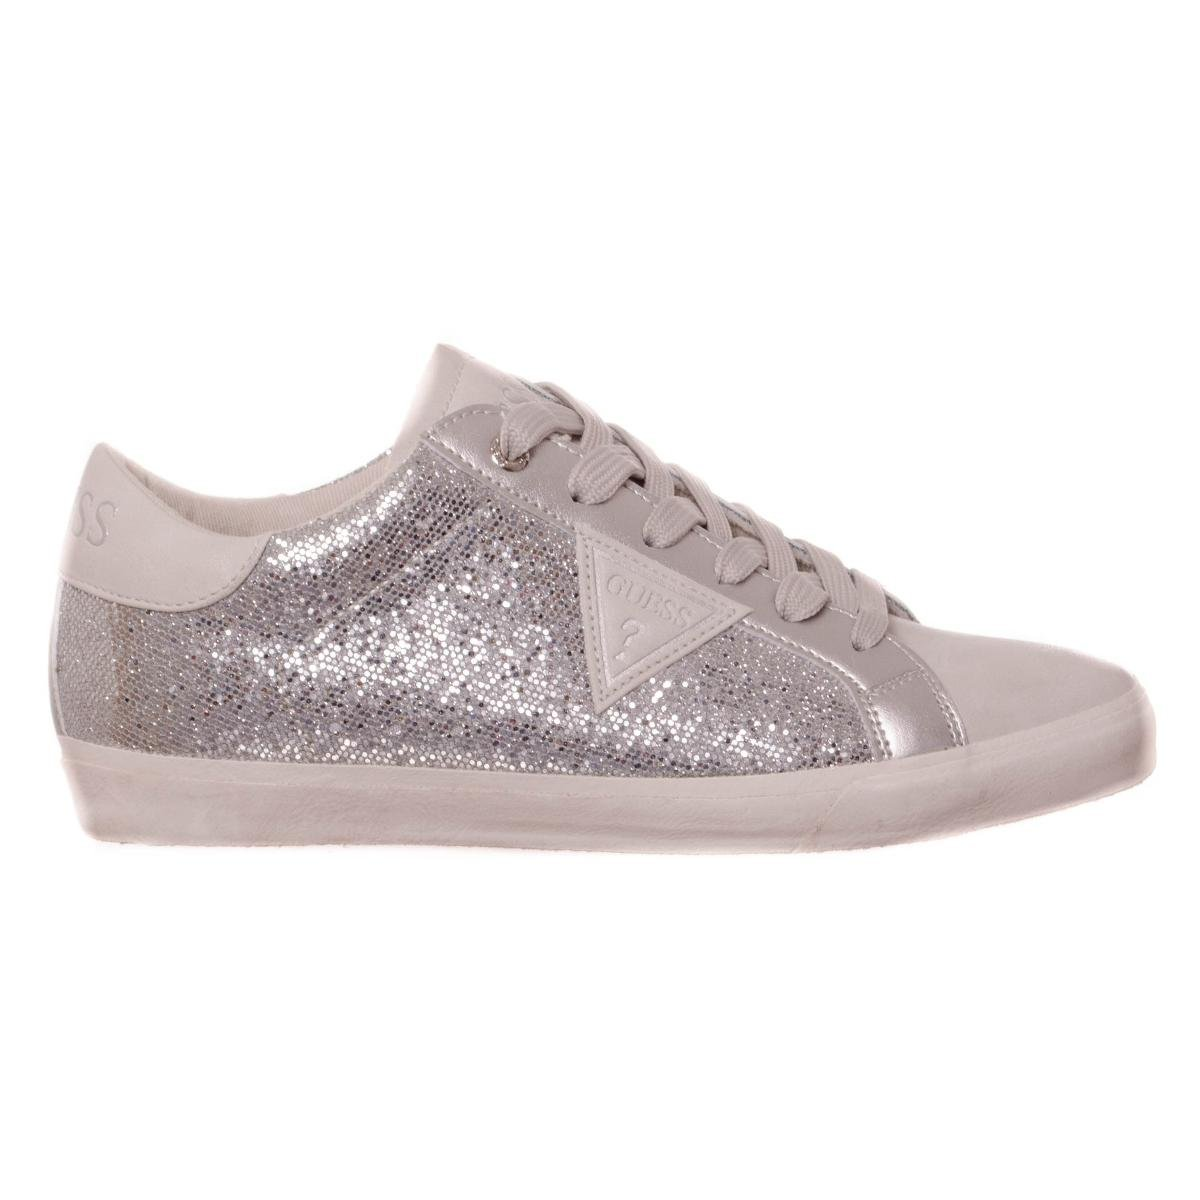 Guess Vega Sneaker Femmes, 14704 Synthétique, Sneaker Low B01M69FKGB - 7179456 - boatplans.space